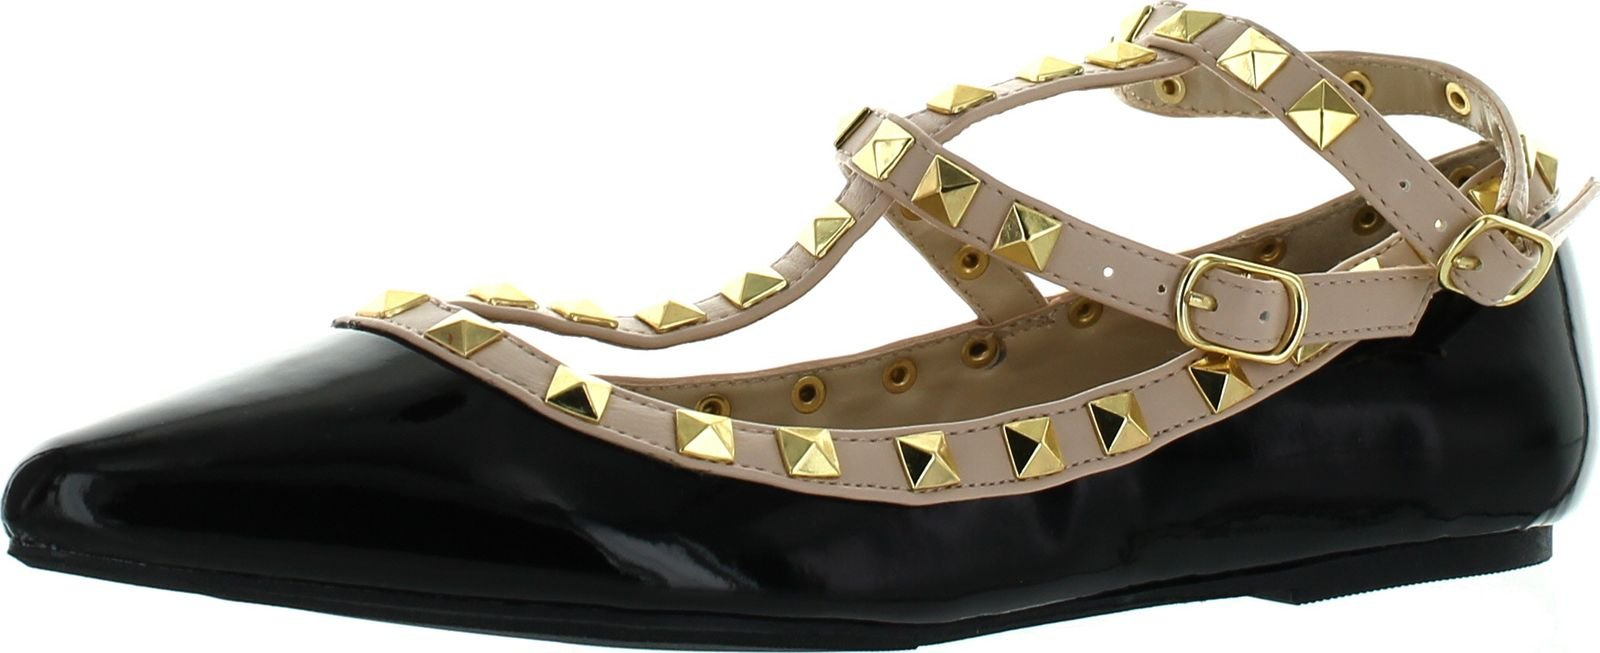 Wild Diva Women's Fashion Pippa-35 Studs Pointy T Bar Flats Shoes Black 7